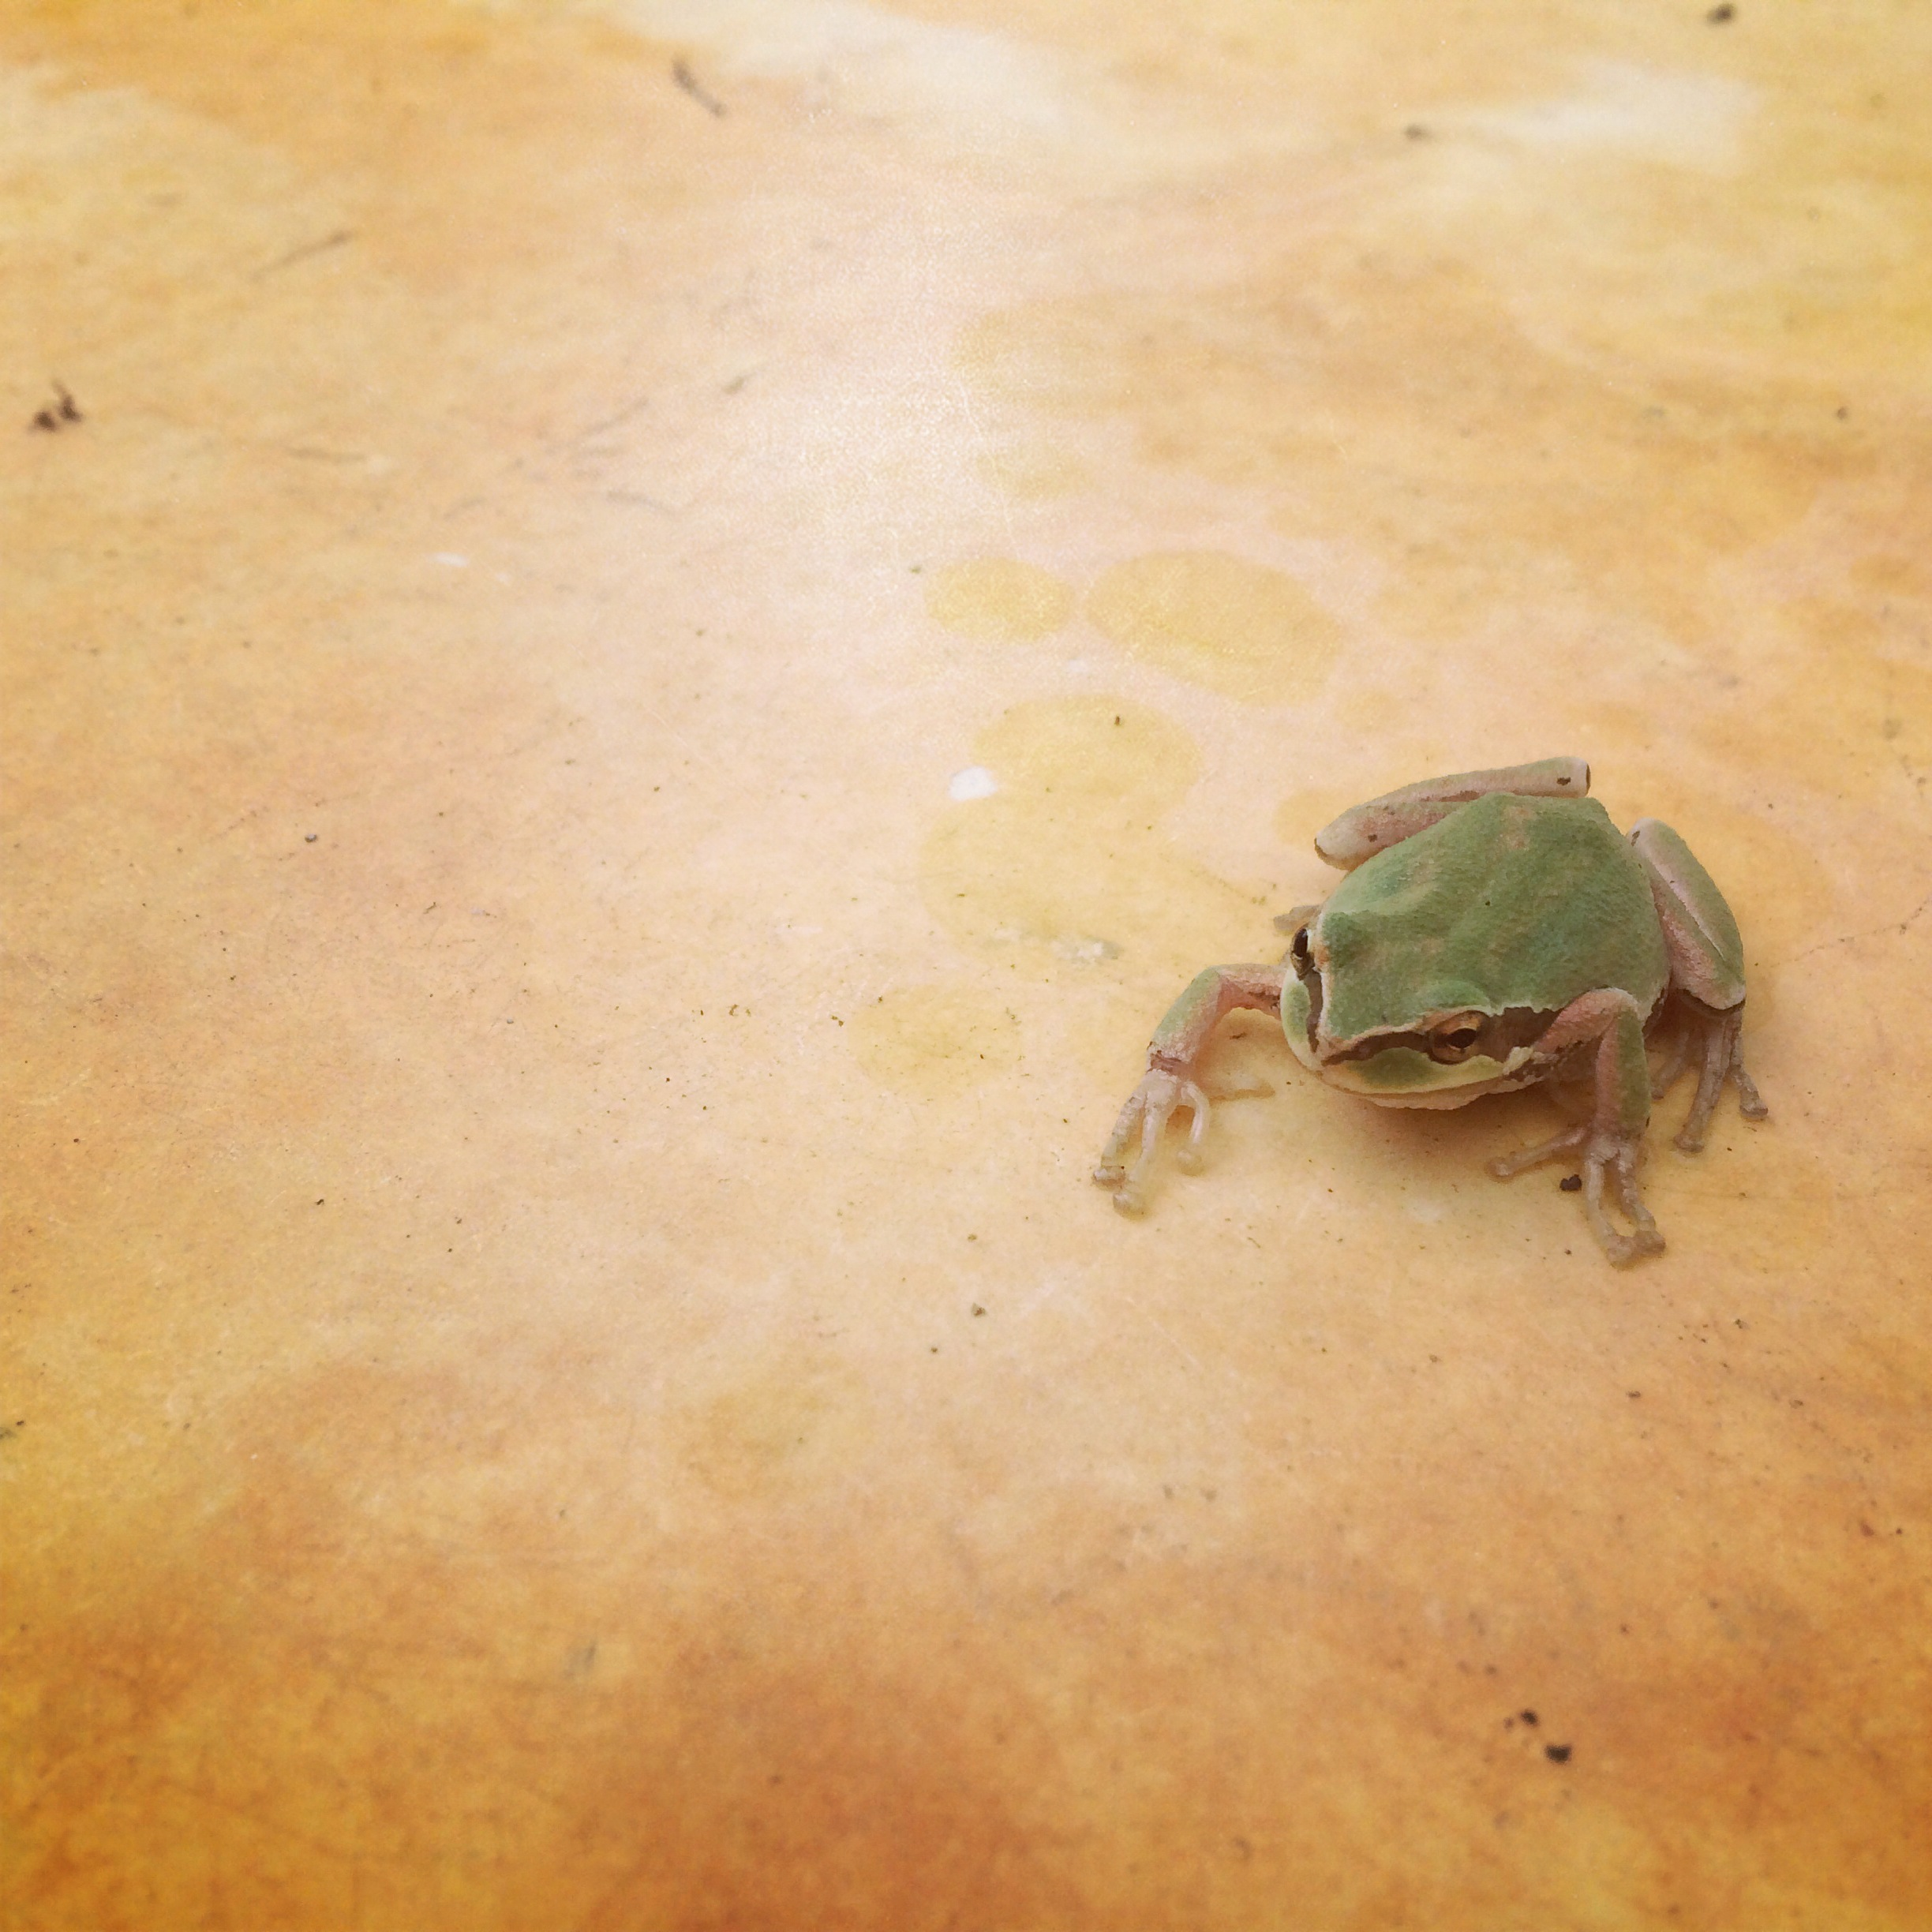 A froggy friend in the wash station.